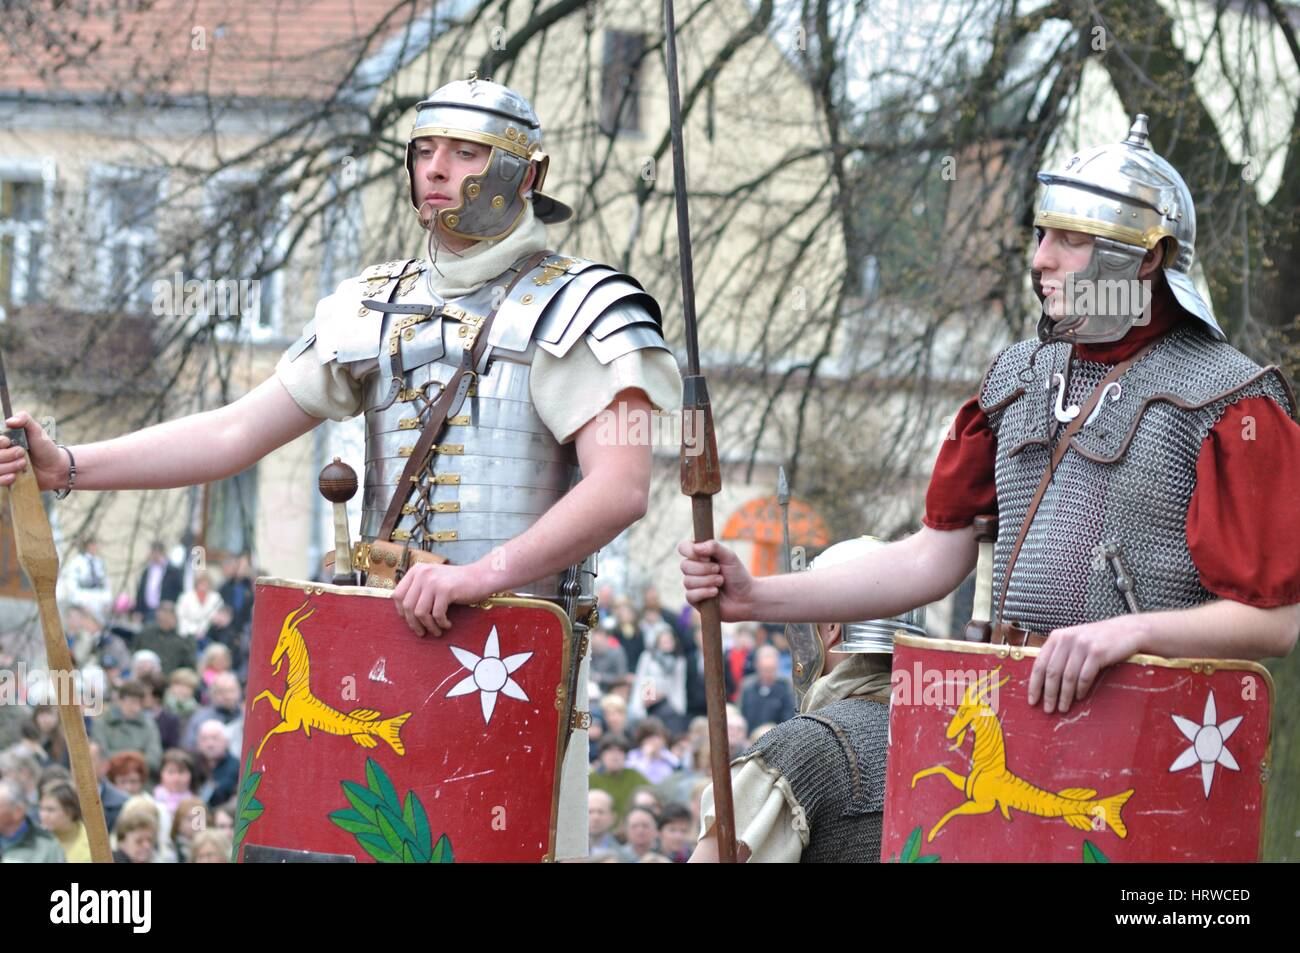 Reenactment of the Roman legionaries, standing on guard, during the street performances Mystery of the Passion. - Stock Image